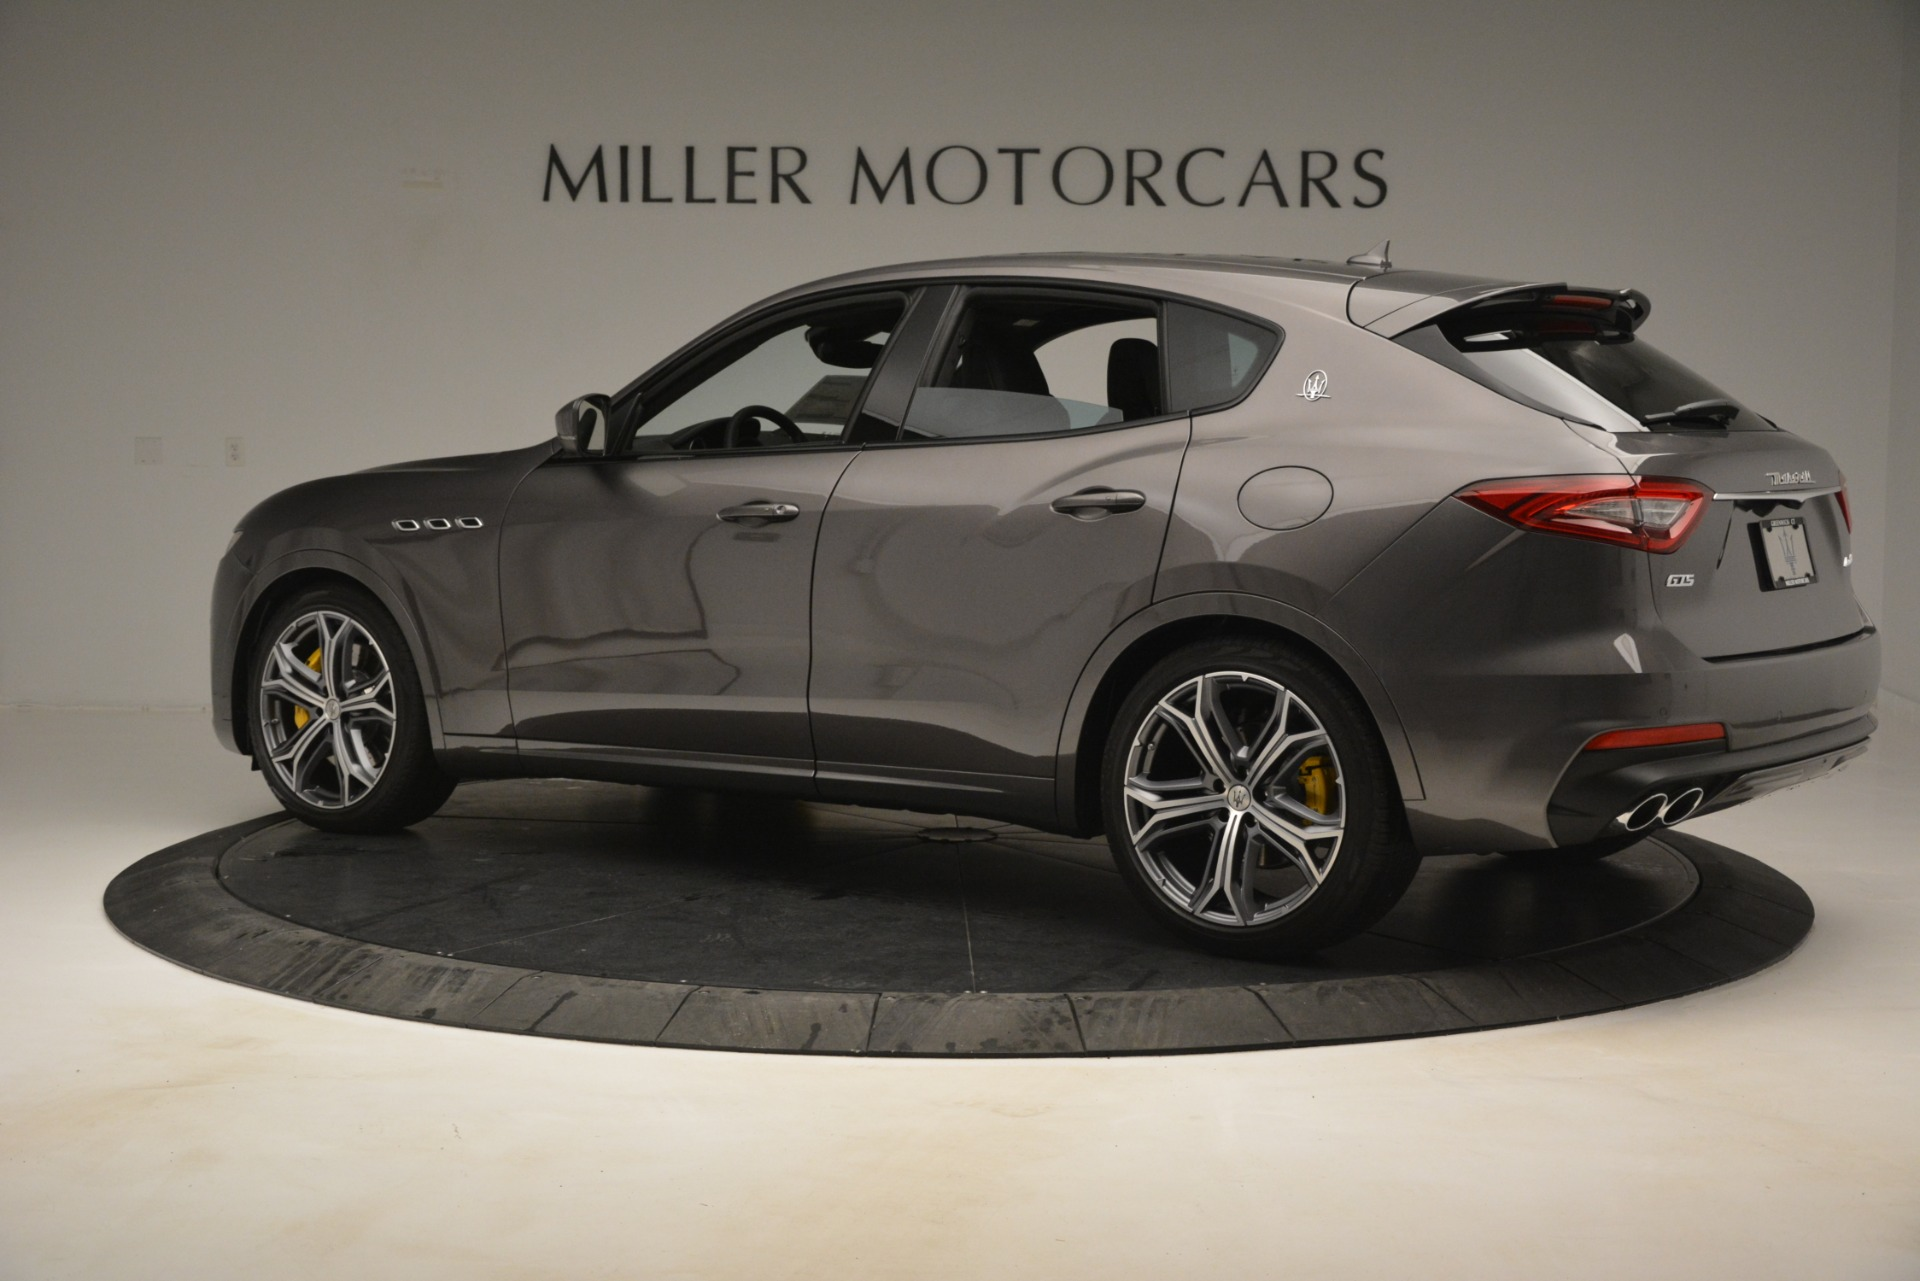 New 2019 Maserati Levante GTS For Sale In Westport, CT 3015_p4